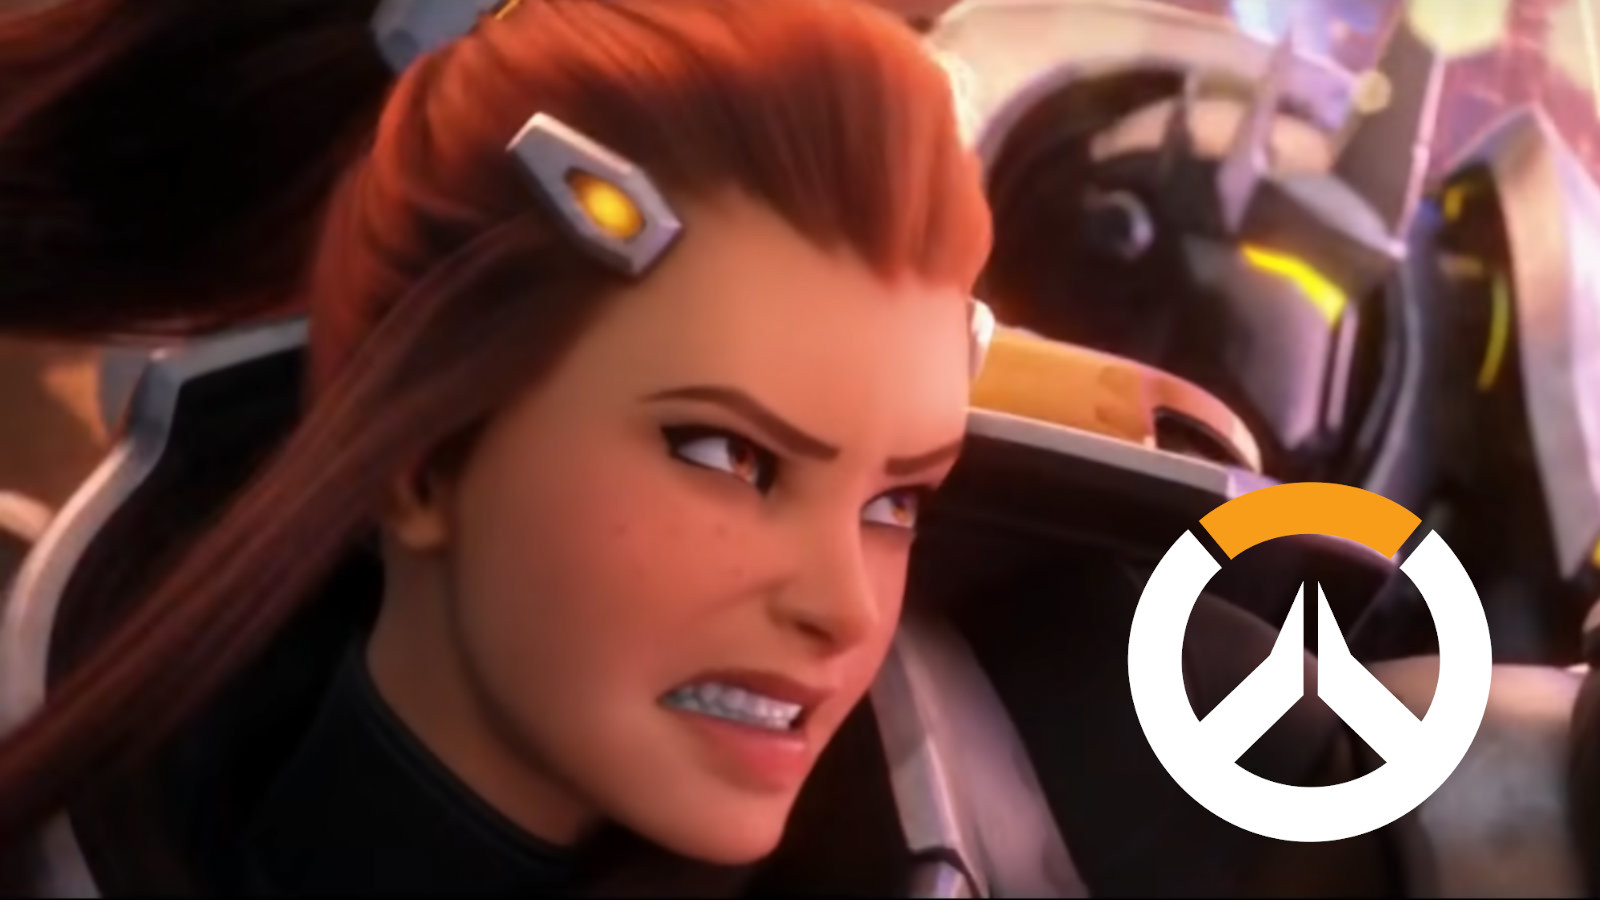 Brigitte and Reinhardt